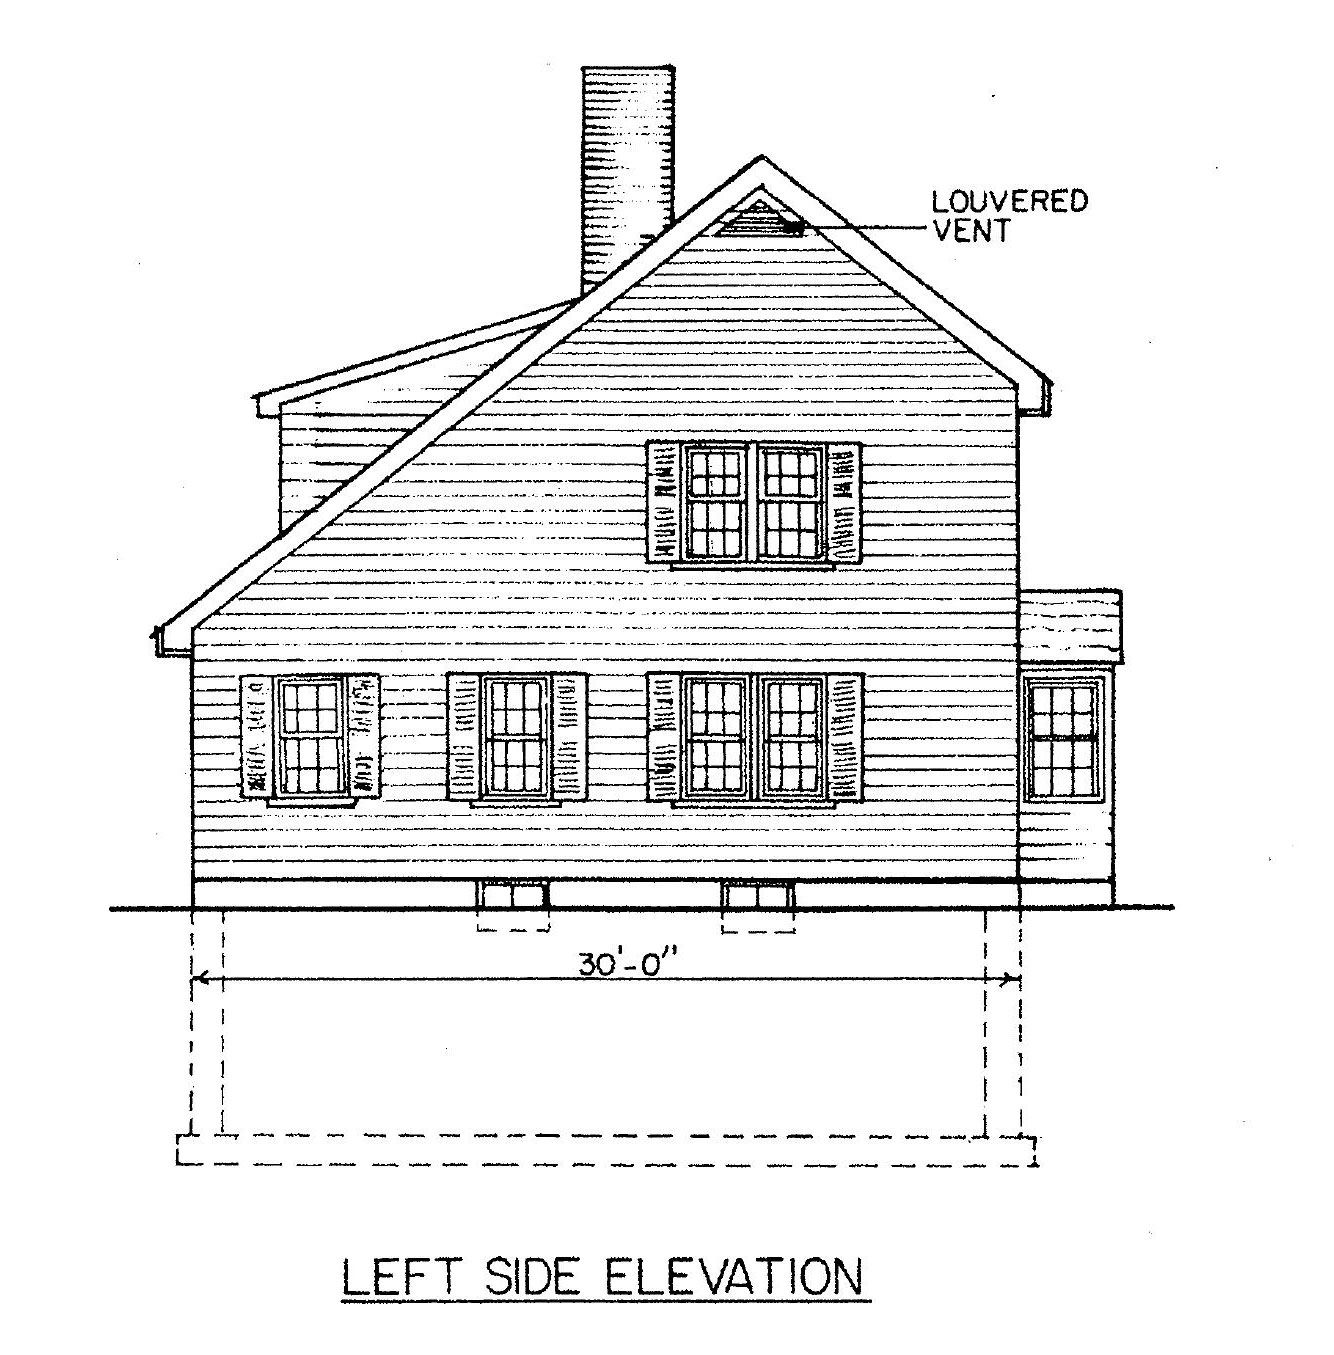 4 Bedroom Saltbox House Blueprint Saltbox Houses House Blueprints House Plans